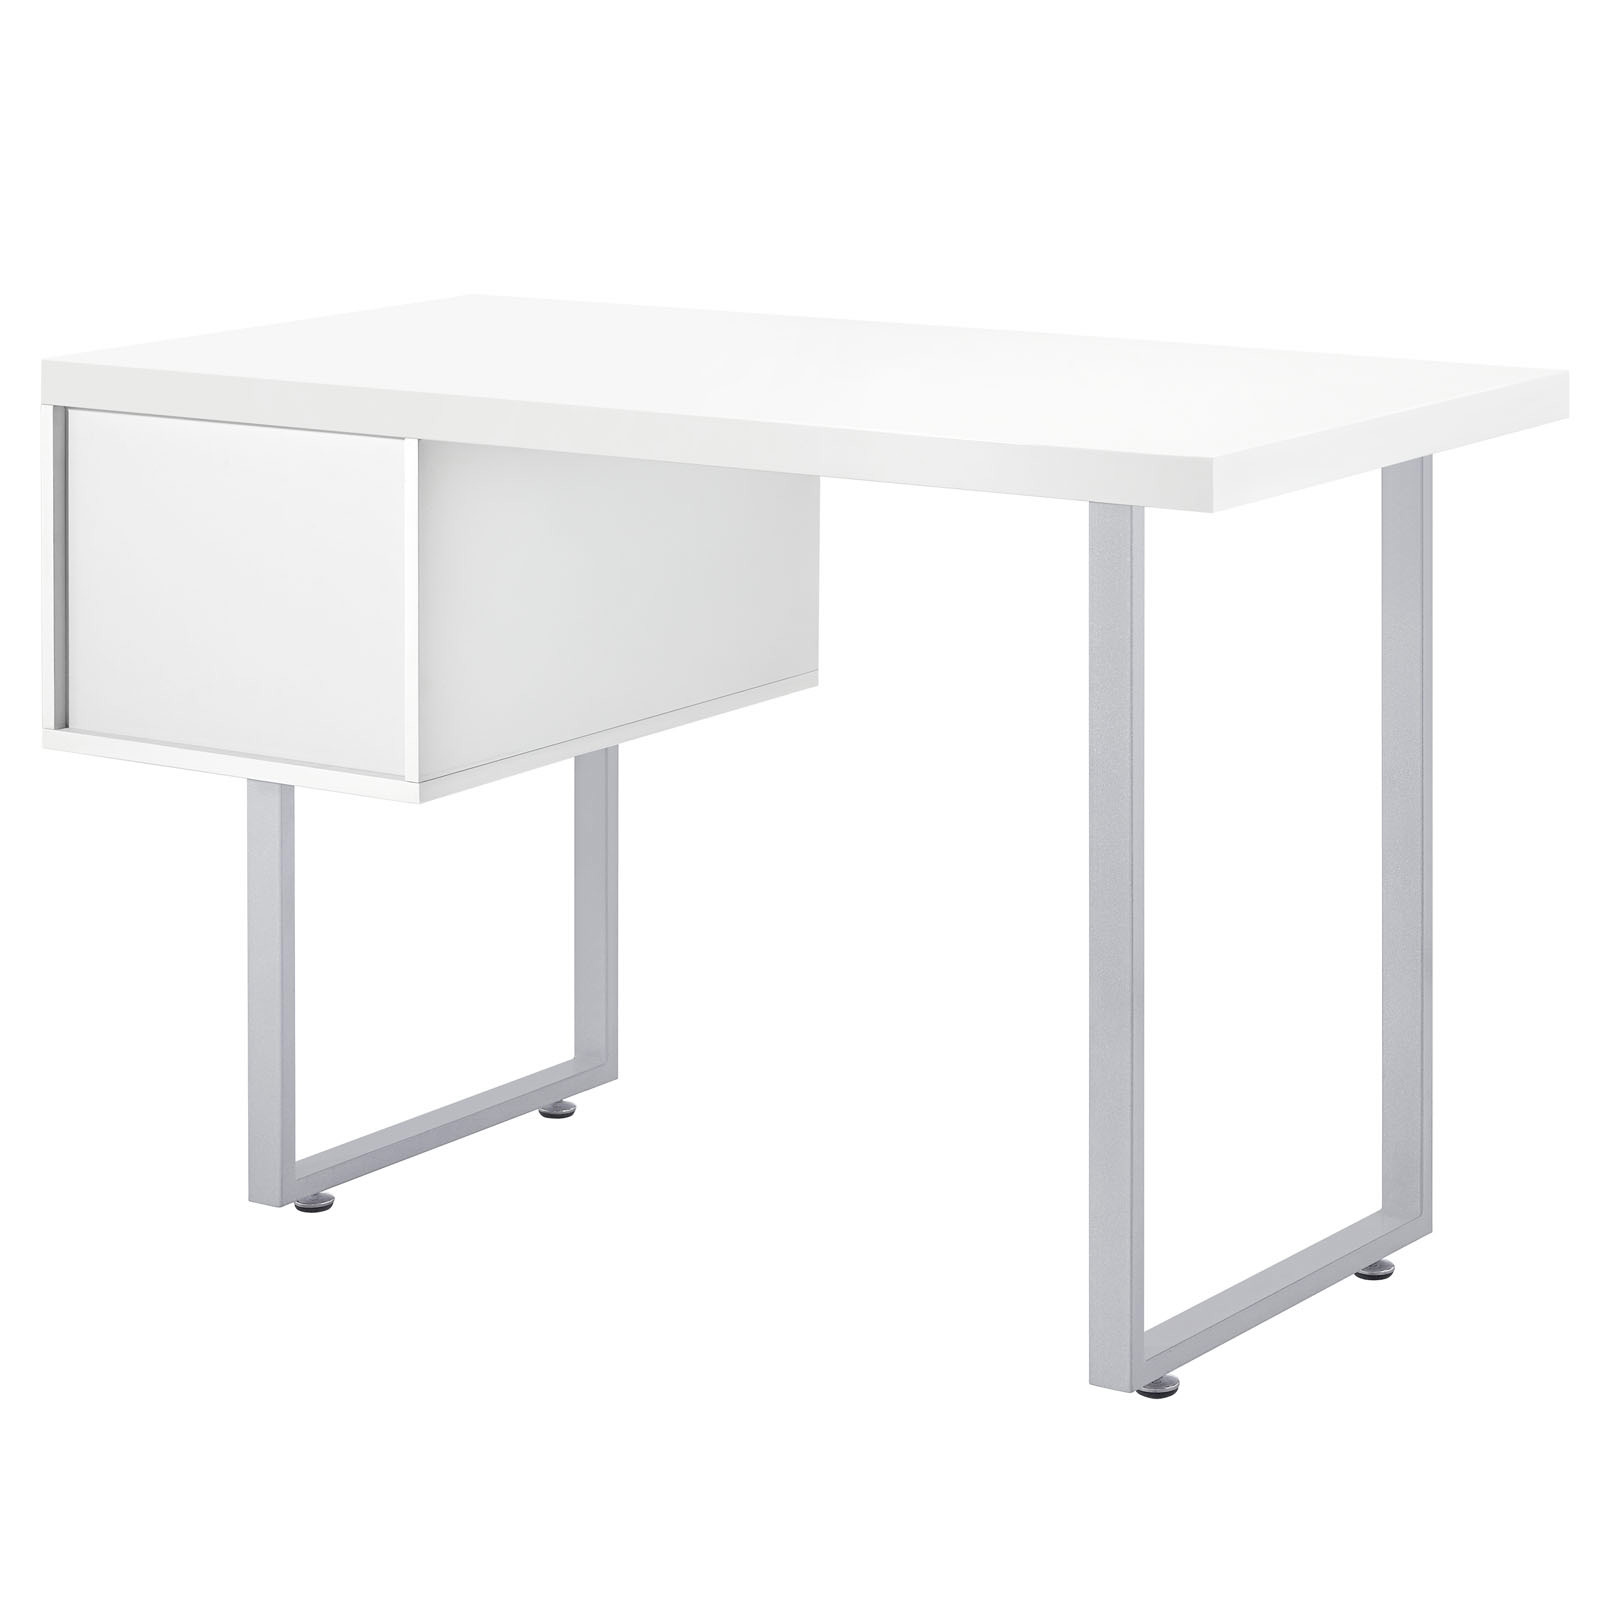 space saving desk from modway back view shown in white